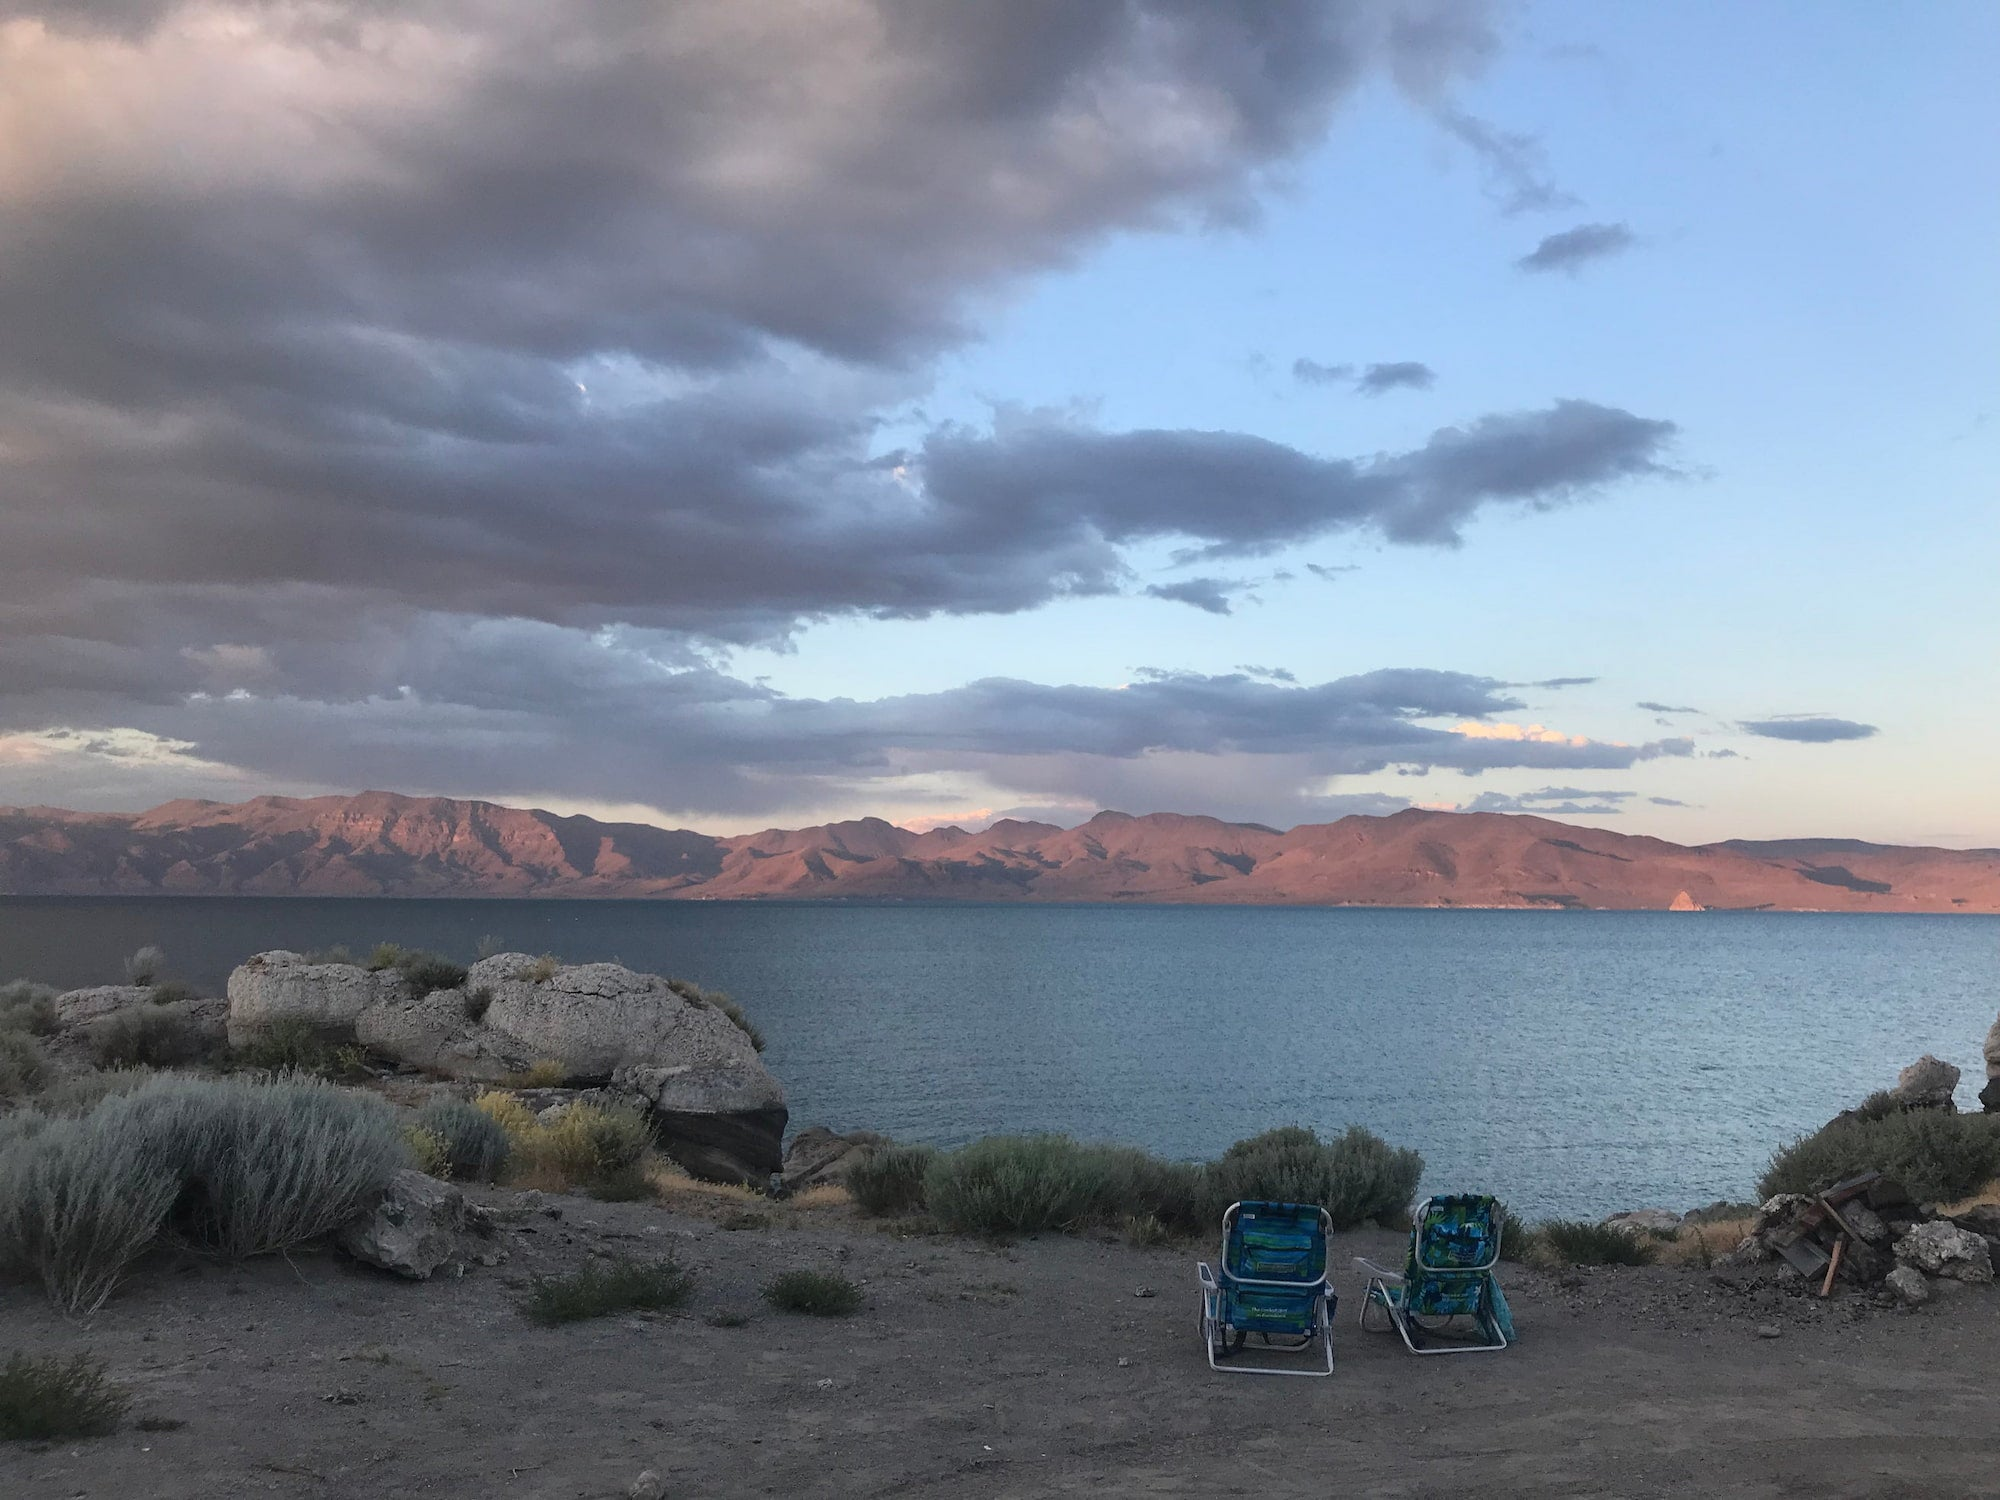 Sunset over pyramid lake campsite with beach chairs overooking the mountain landscape.